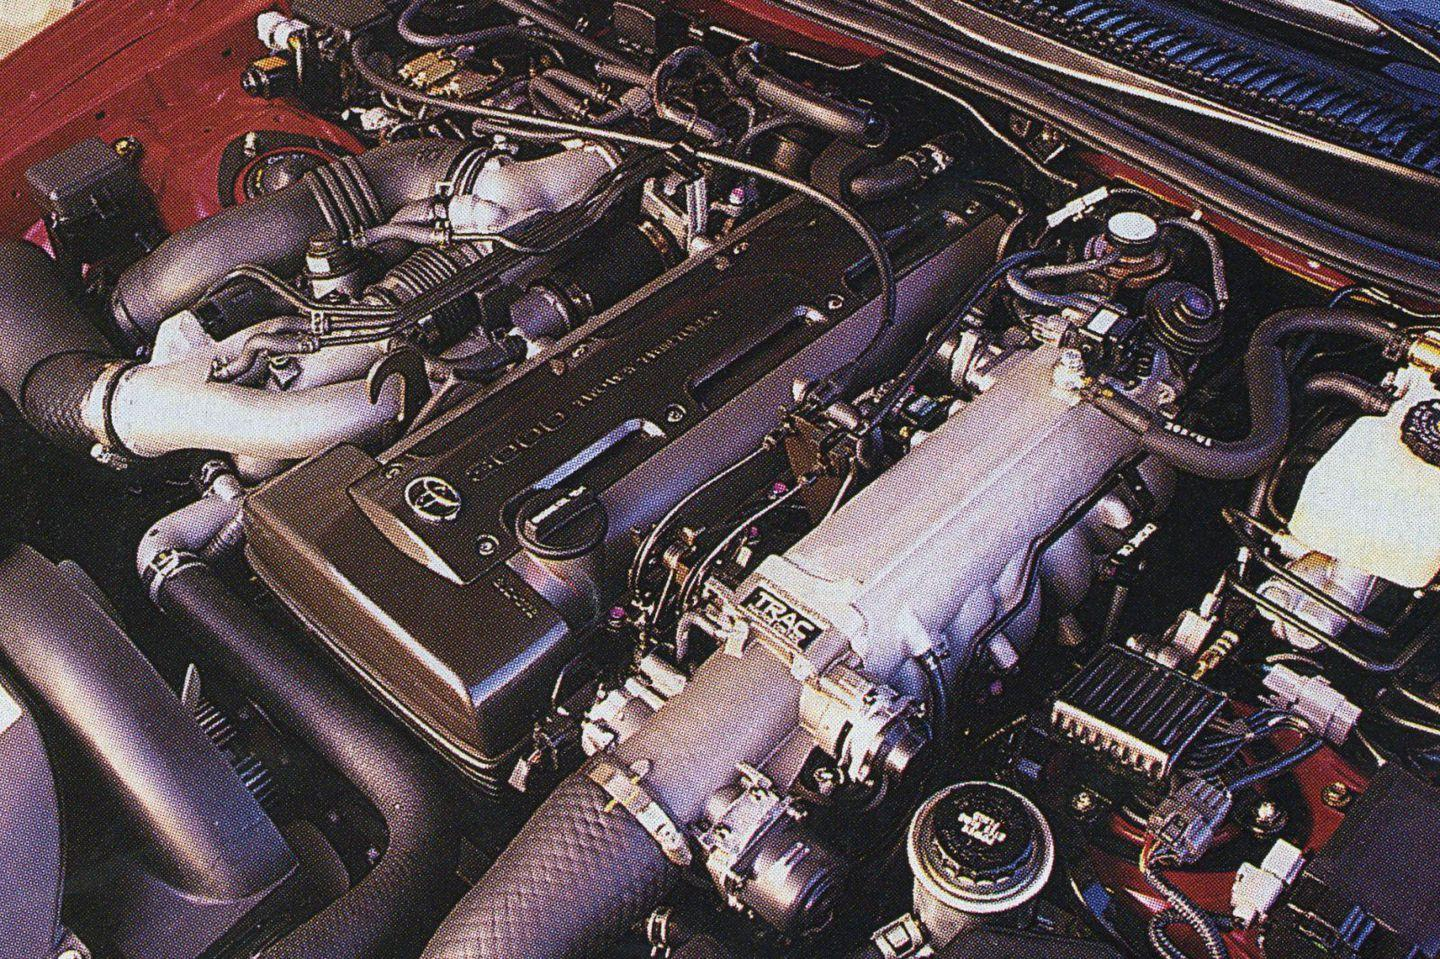 2jz Engine For Sale With Manual Transmission